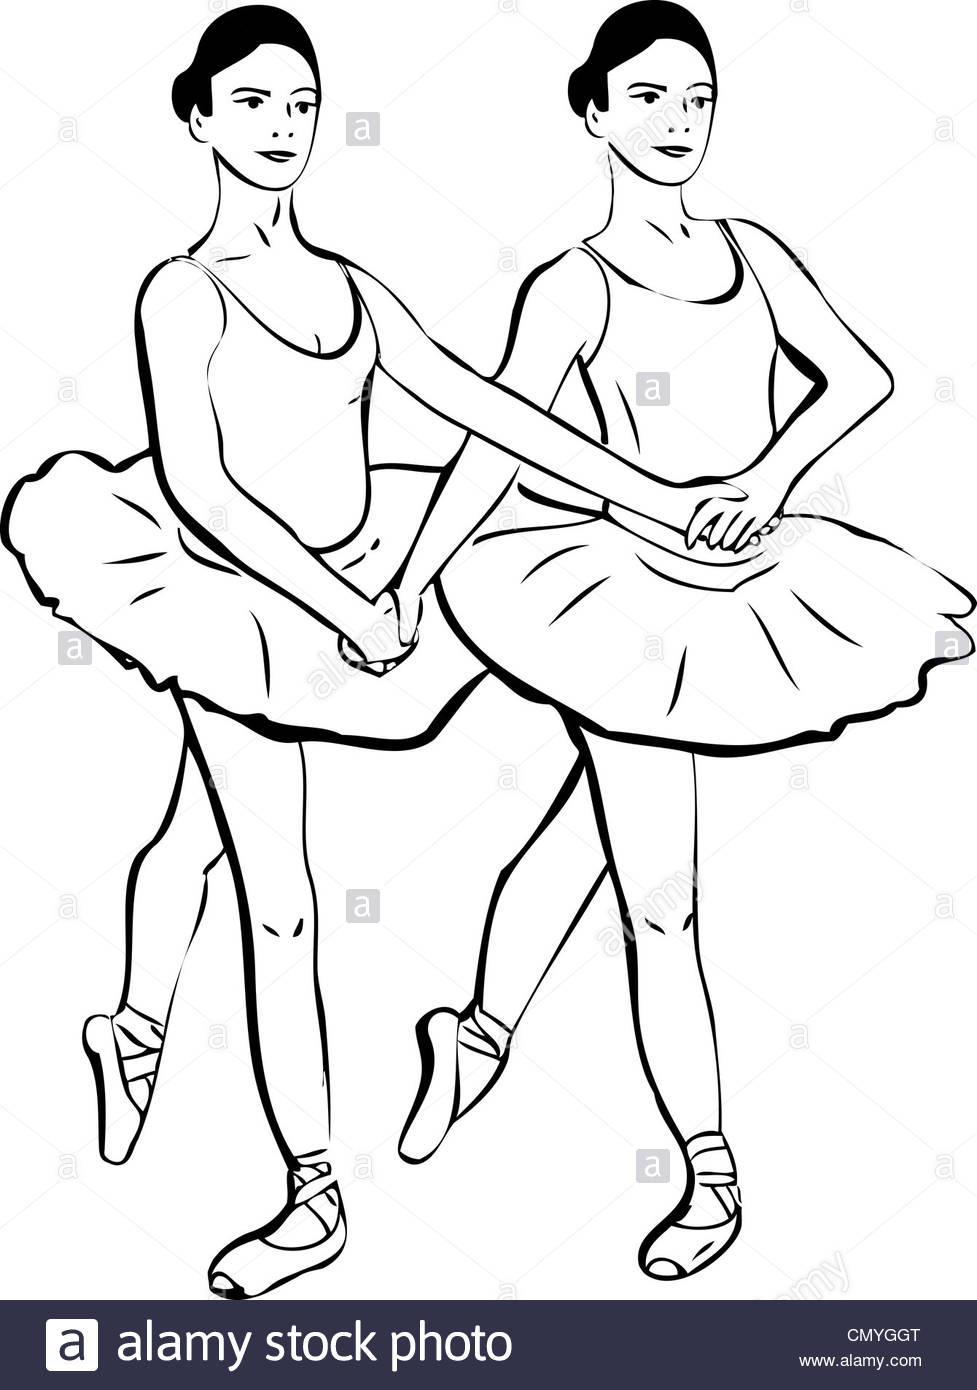 977x1390 Sketch Of Two Girls Standing In A Pair Of Ballerina Stock Photo